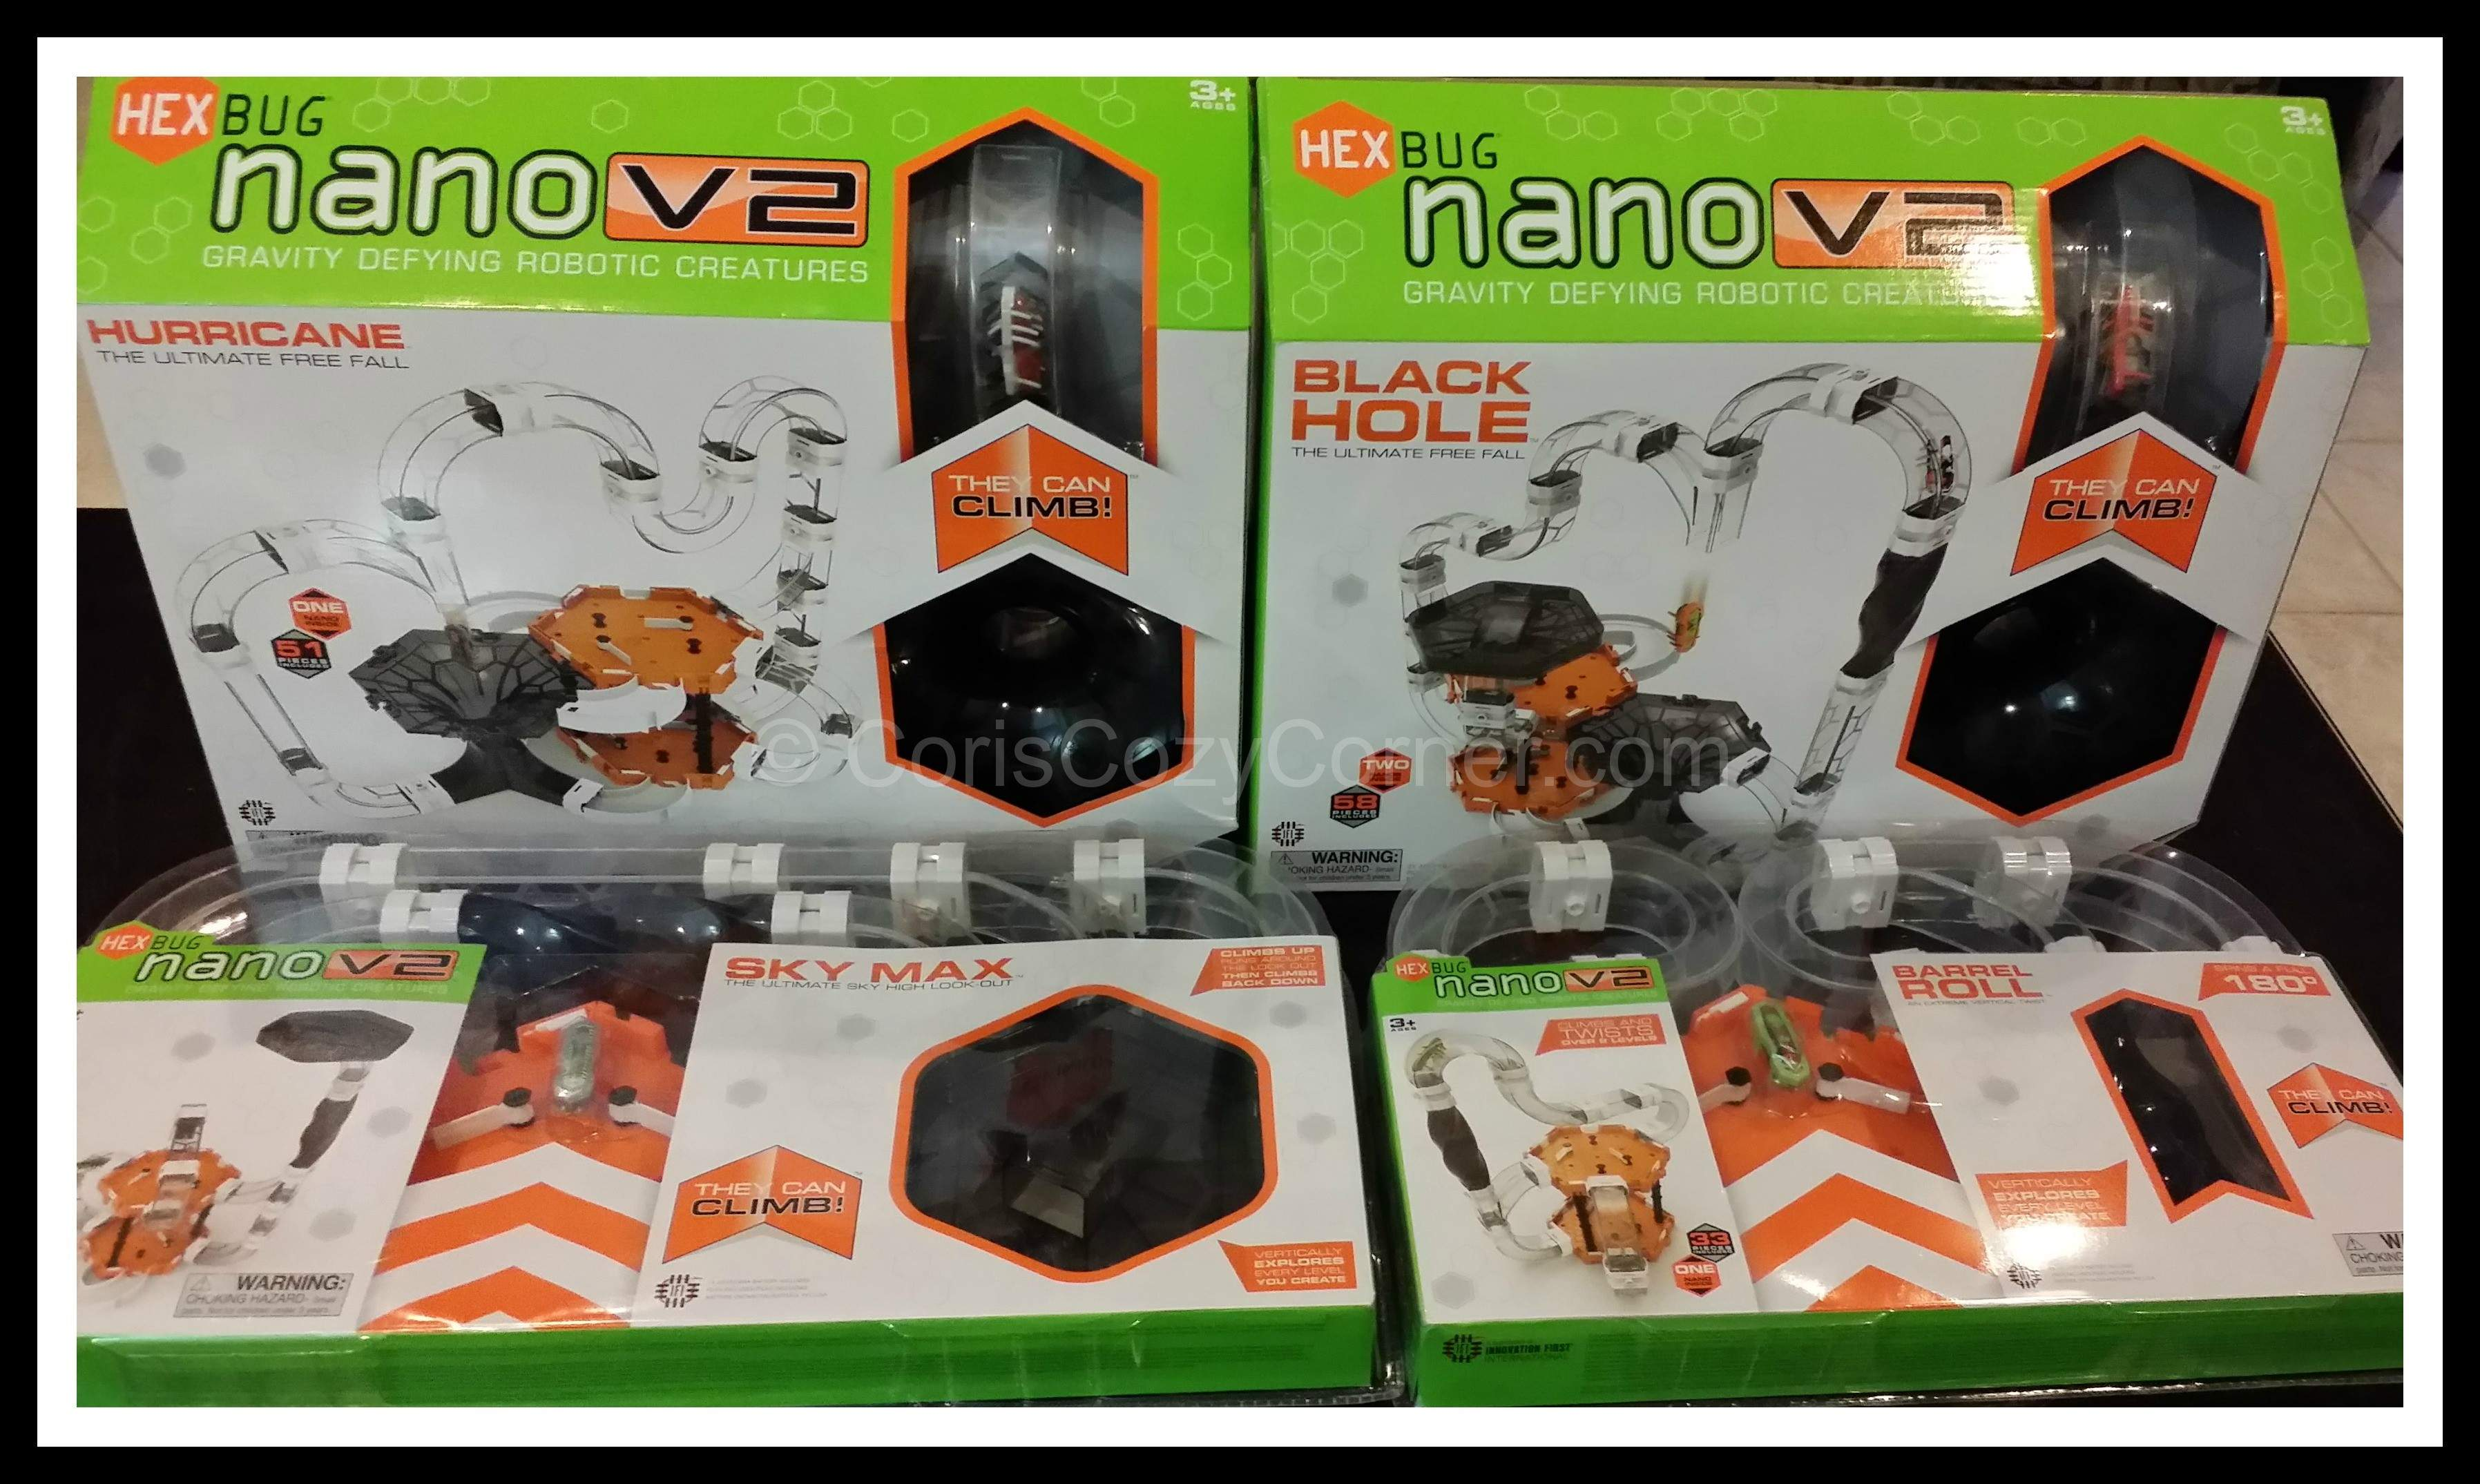 hexbug nano v2 instructions